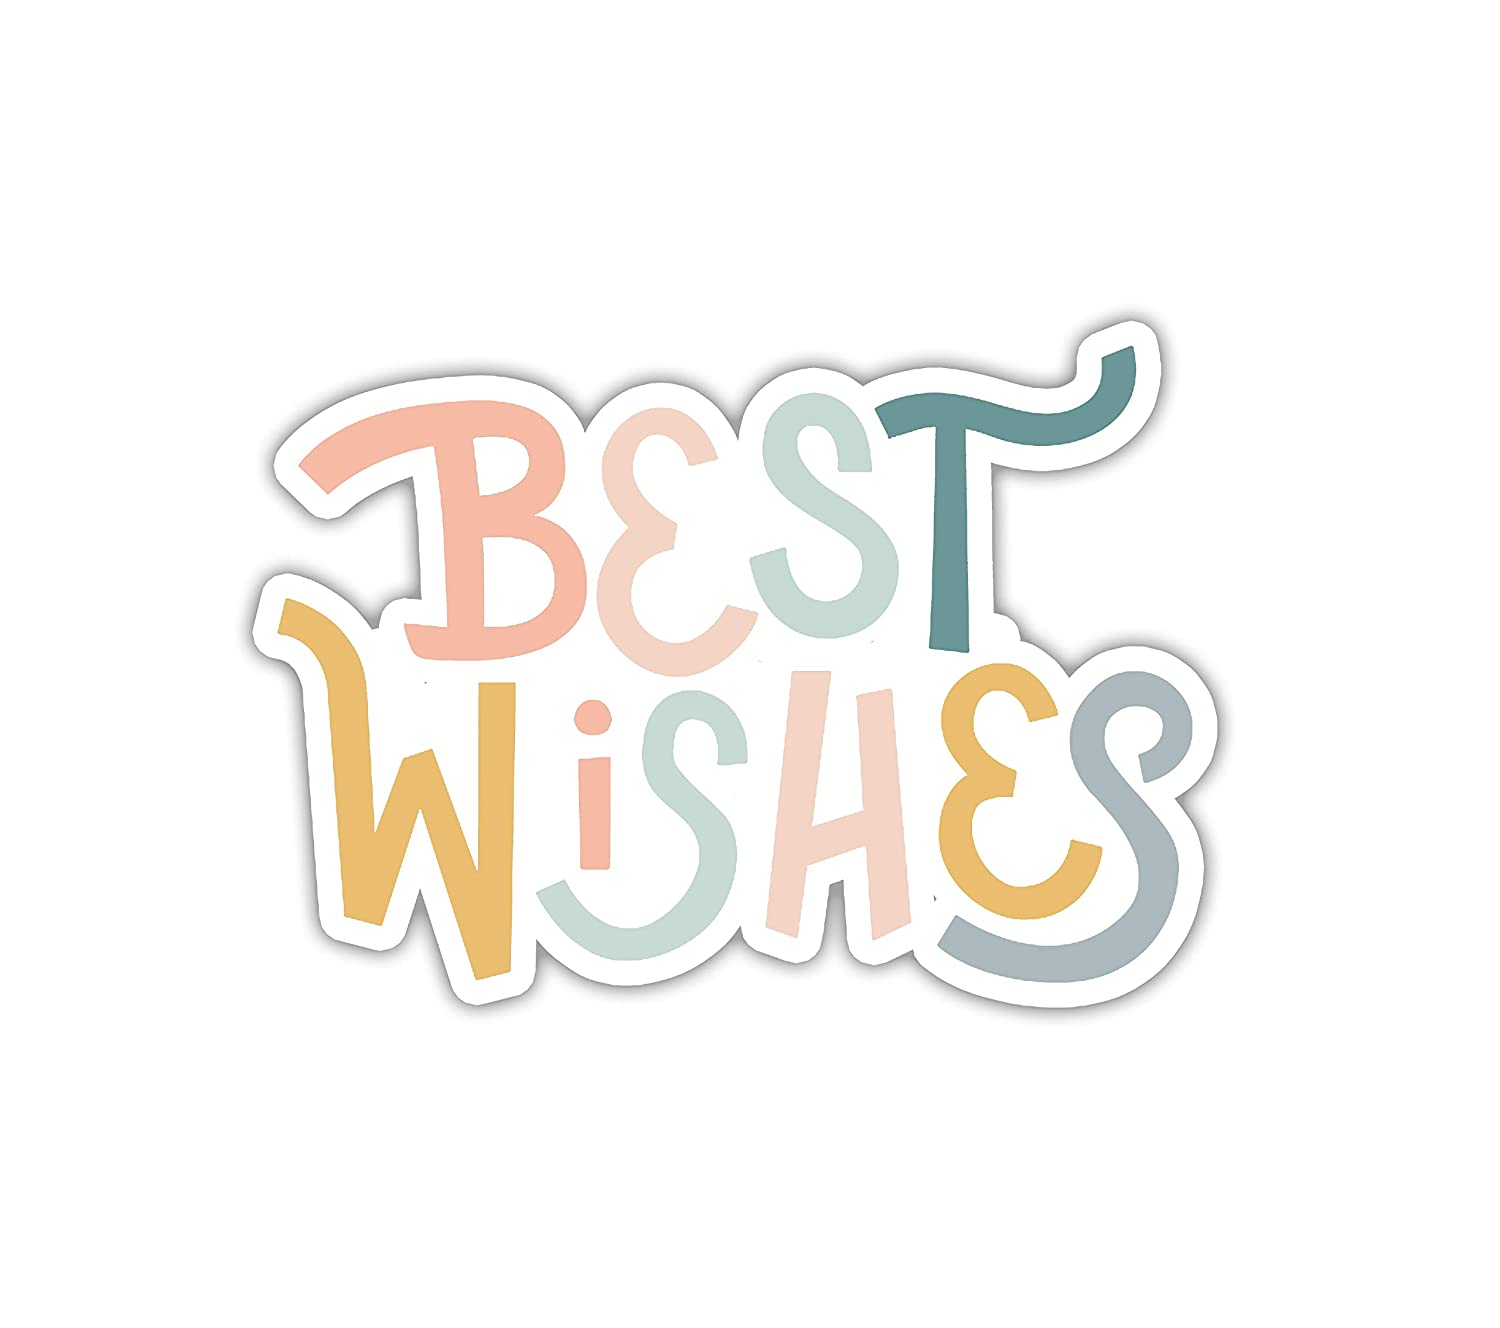 Max 87% OFF Best Wishes Sticker Laptop Phone Bottle Water Industry No. 1